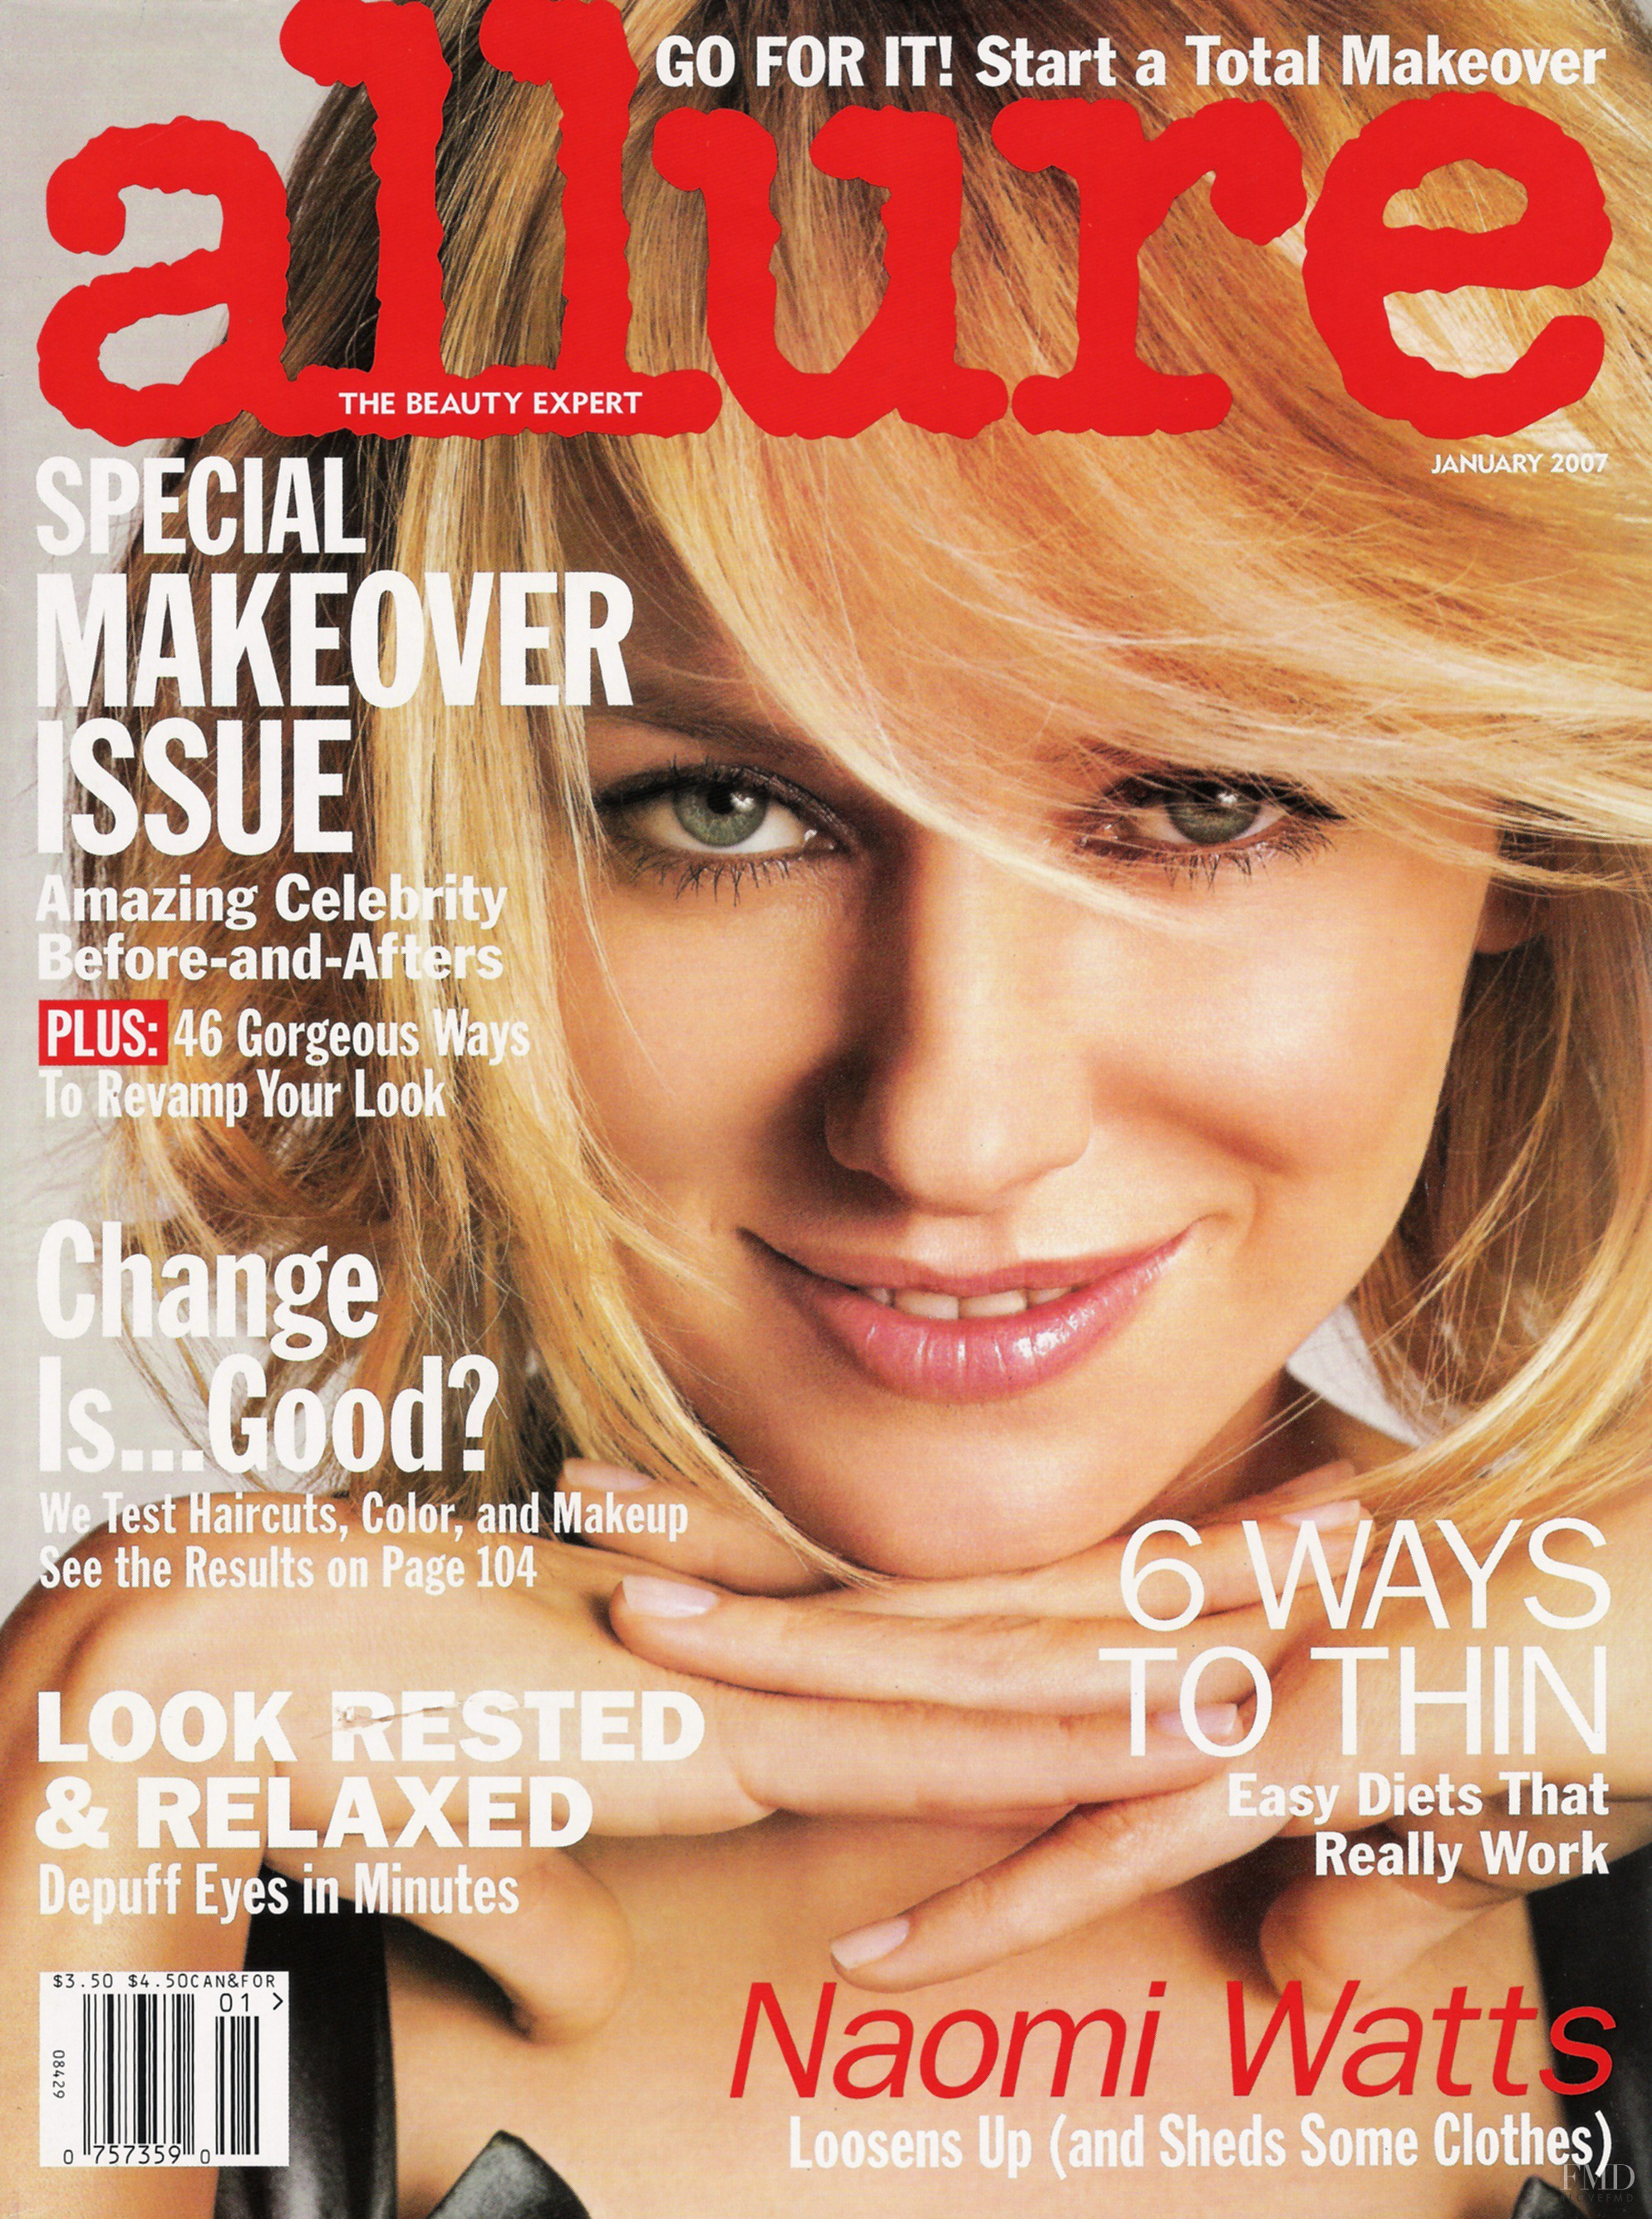 Cover Of Allure With Naomi Watts, January 2007 (ID:4763